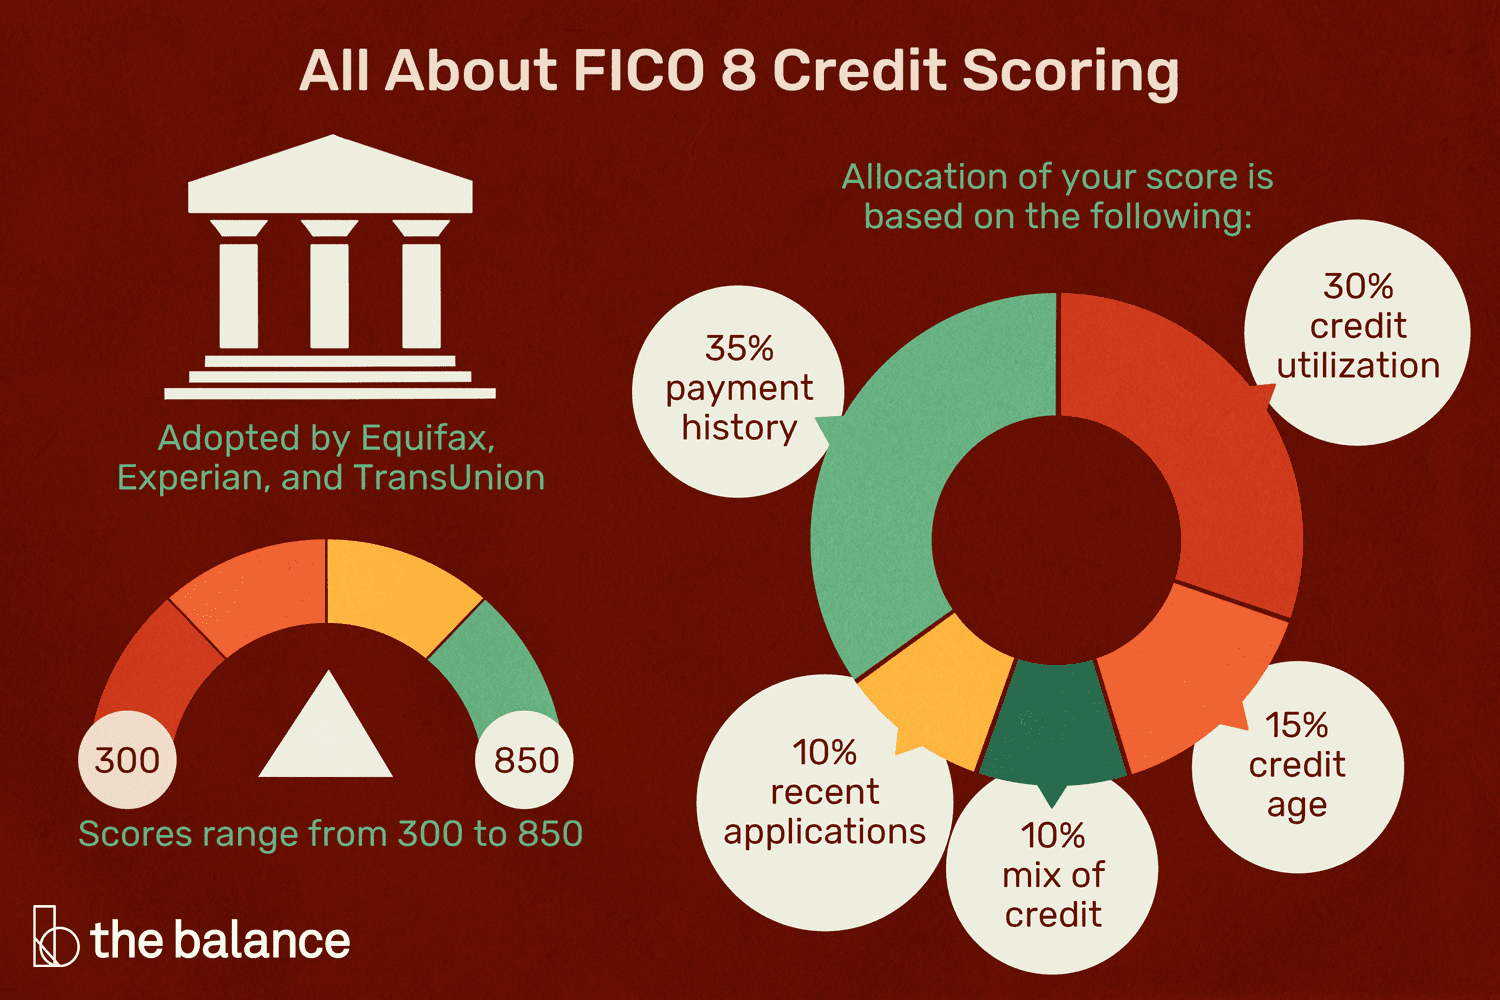 FICO 7 Credit Score: What Is It?